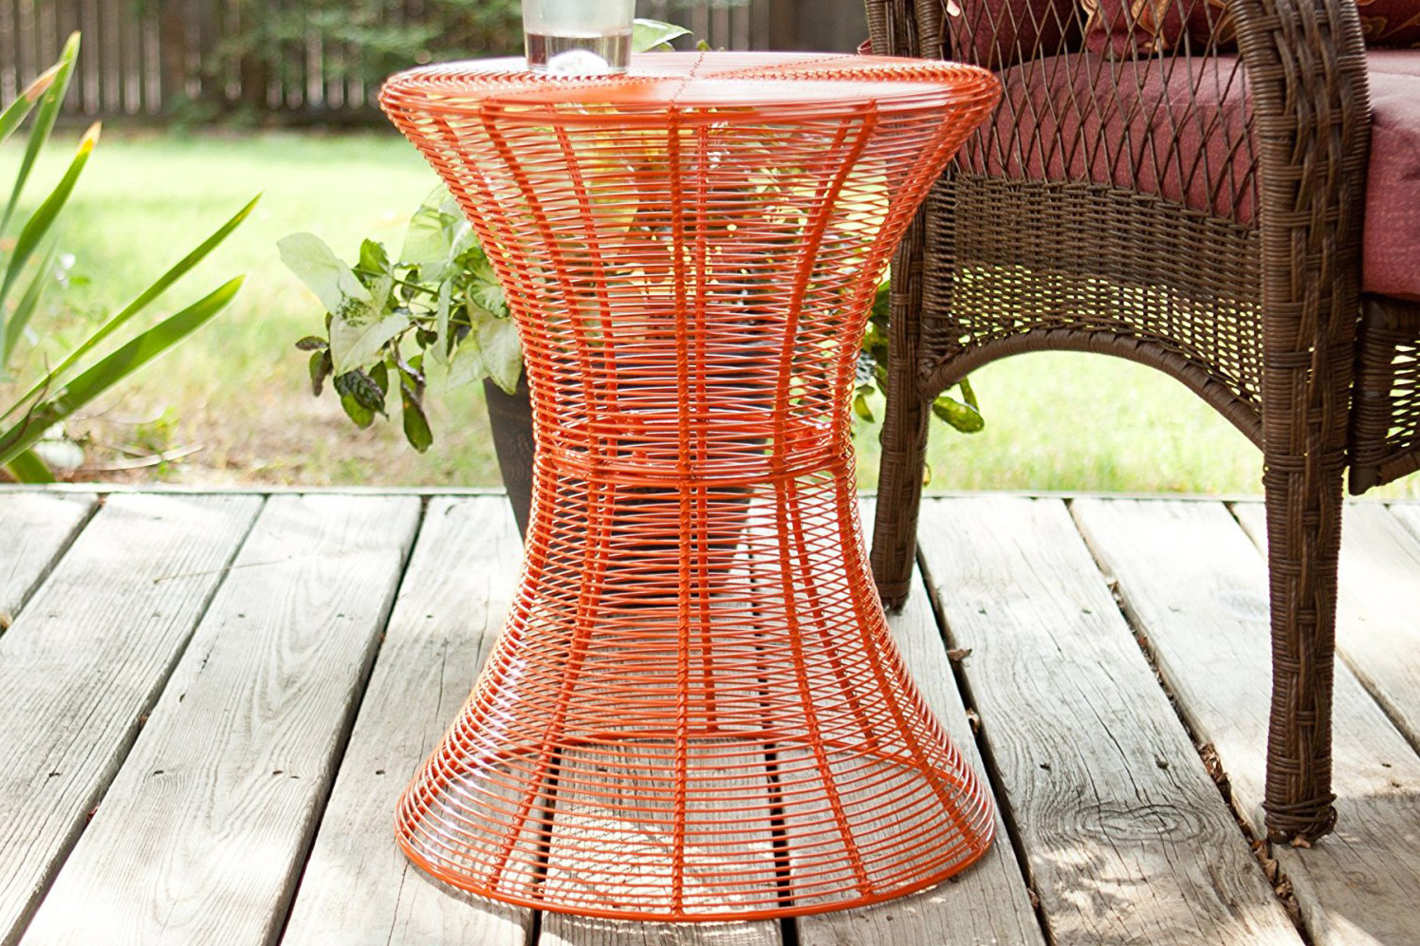 best end tables homebeez orange metal outdoor side table sei round accent new vintage furniture reproduction designer teak garden screw desk legs diy living room pottery barn high